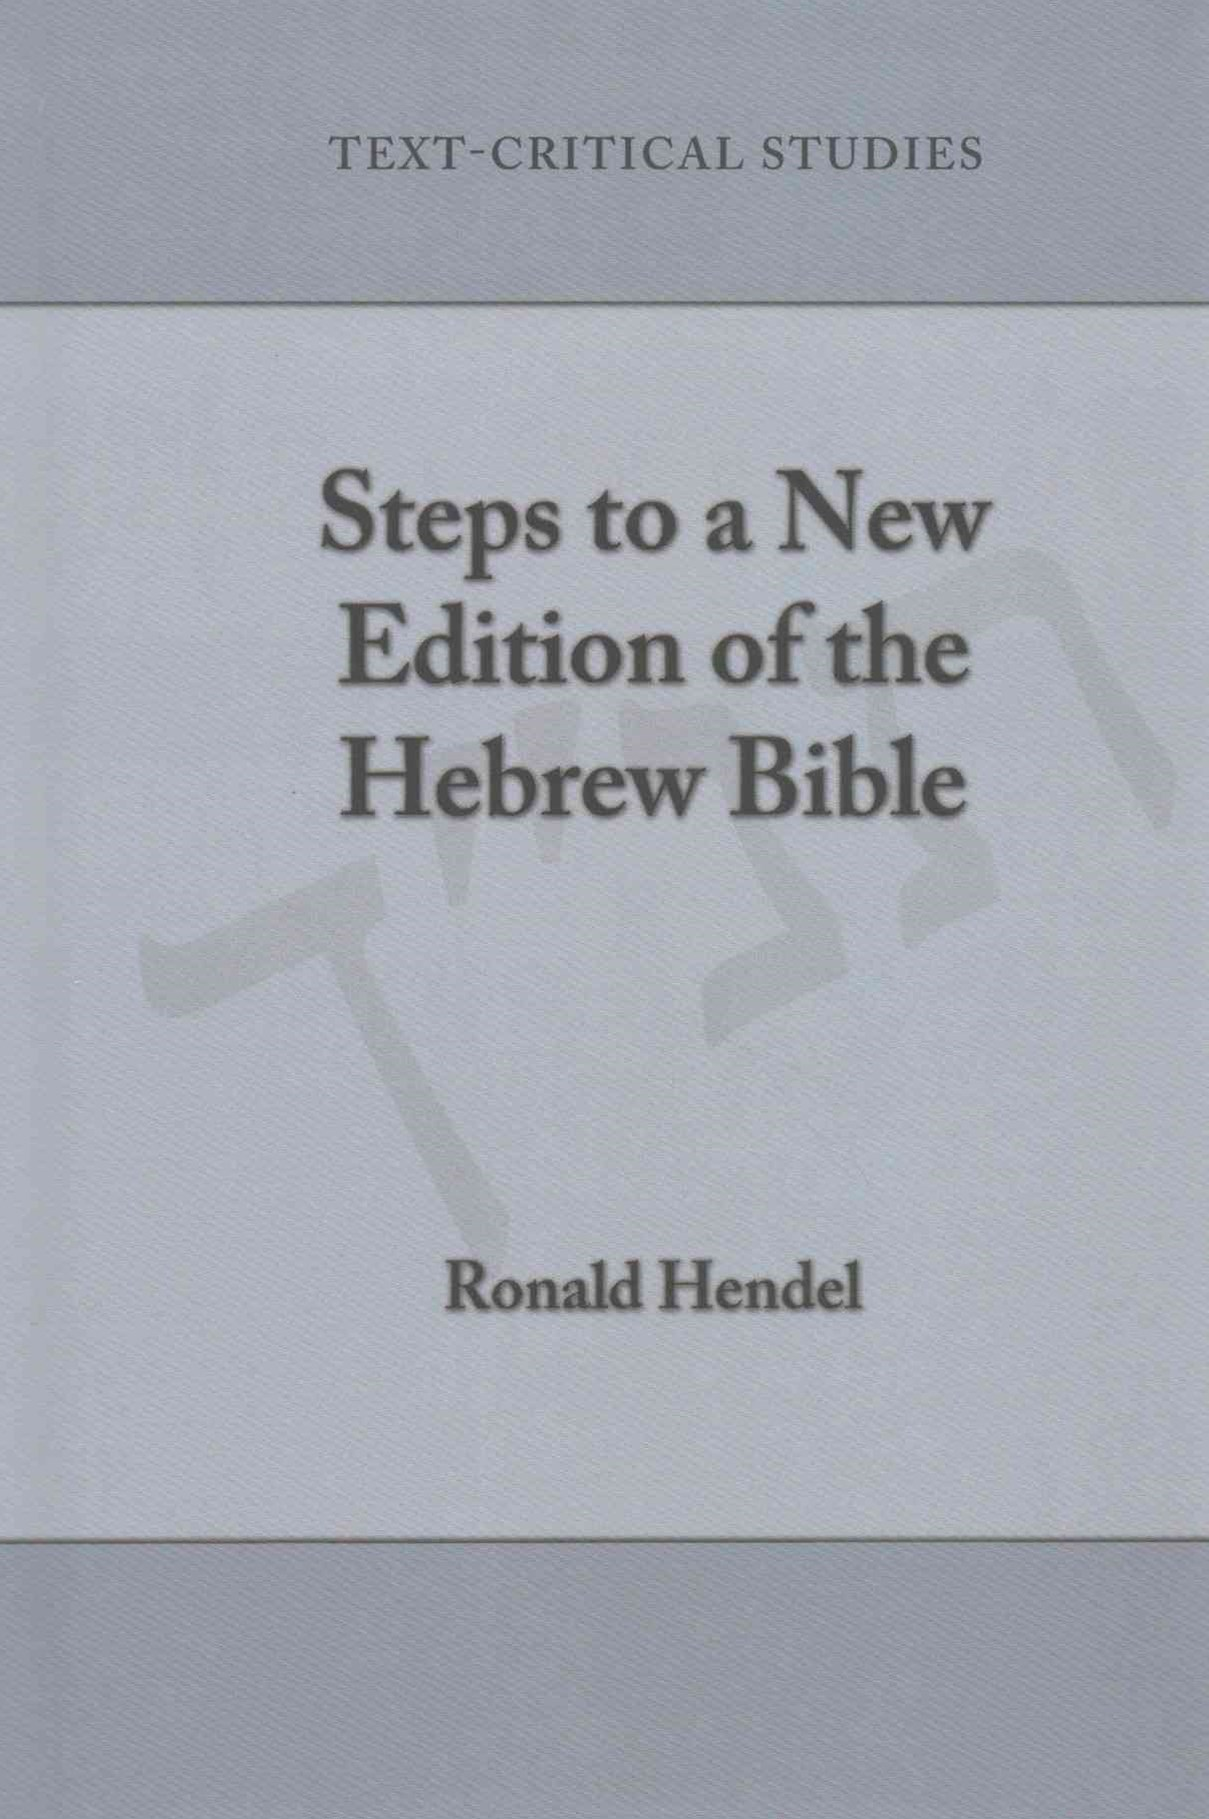 Steps to a New Edition of the Hebrew Bible